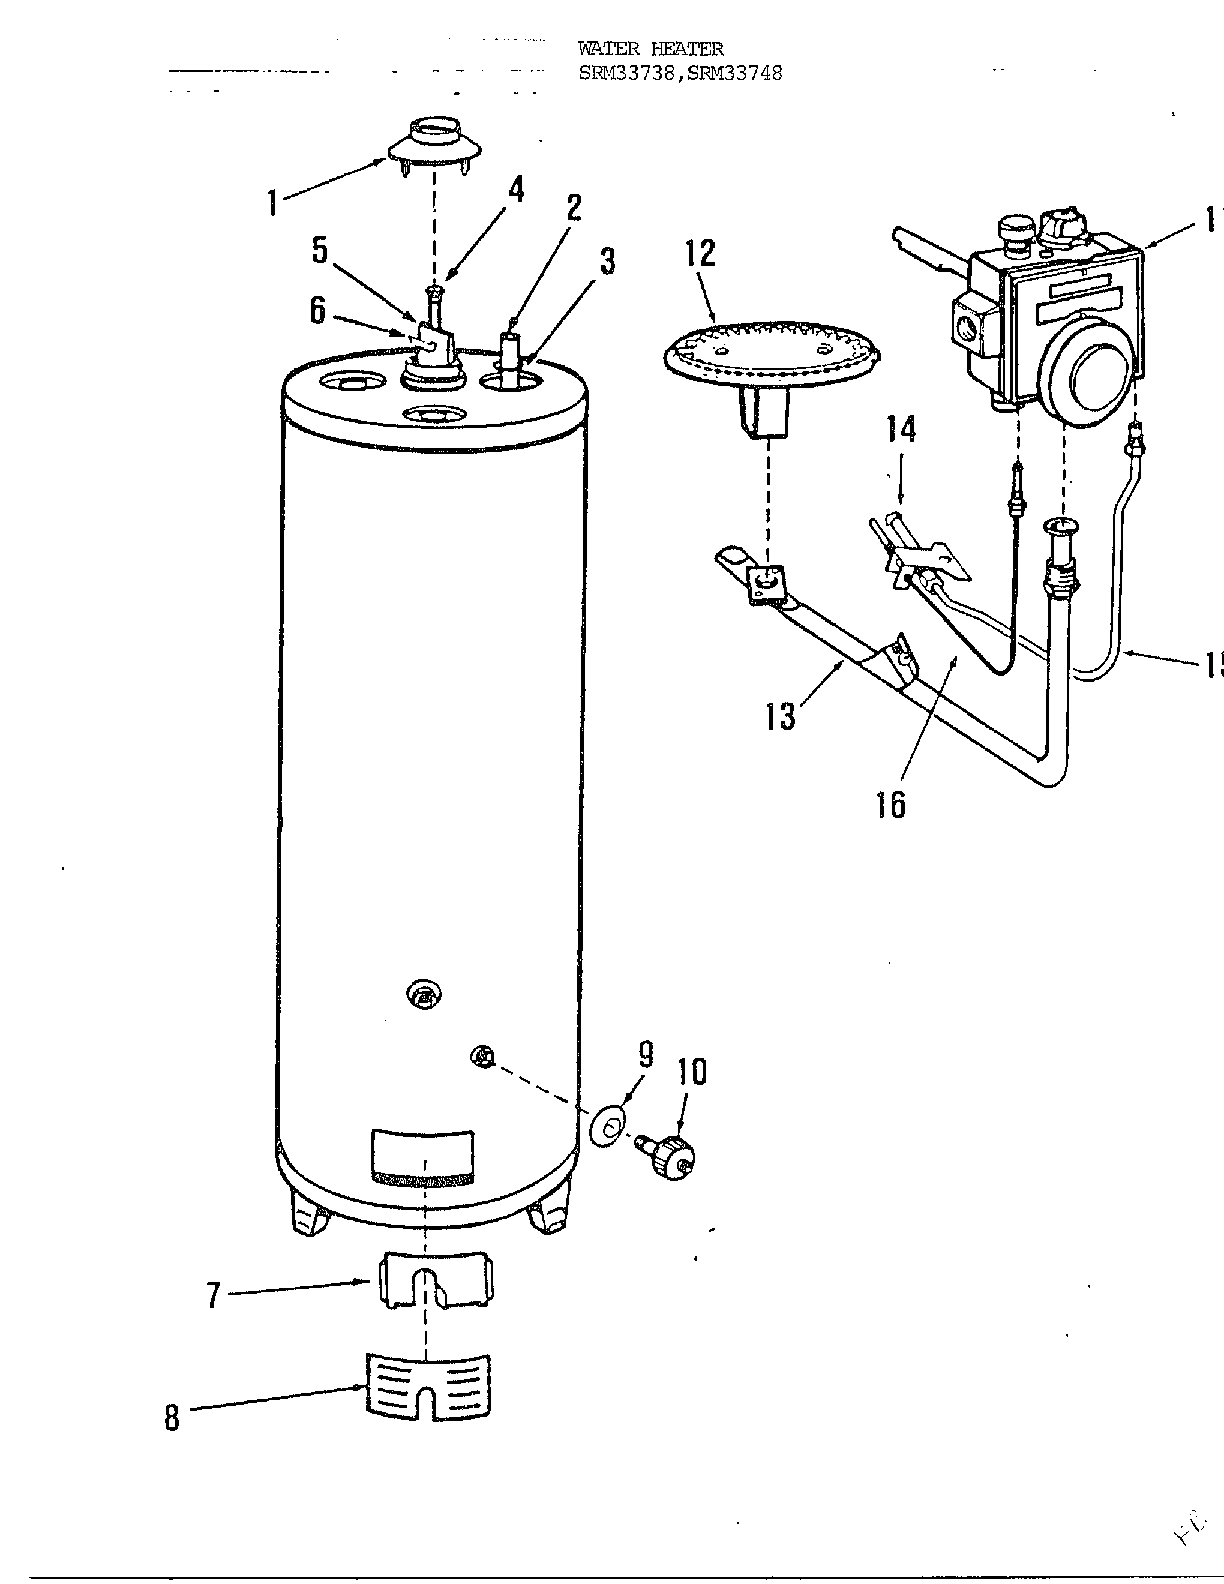 Rheem Tankless Water Heater Wiring Diagram Collection